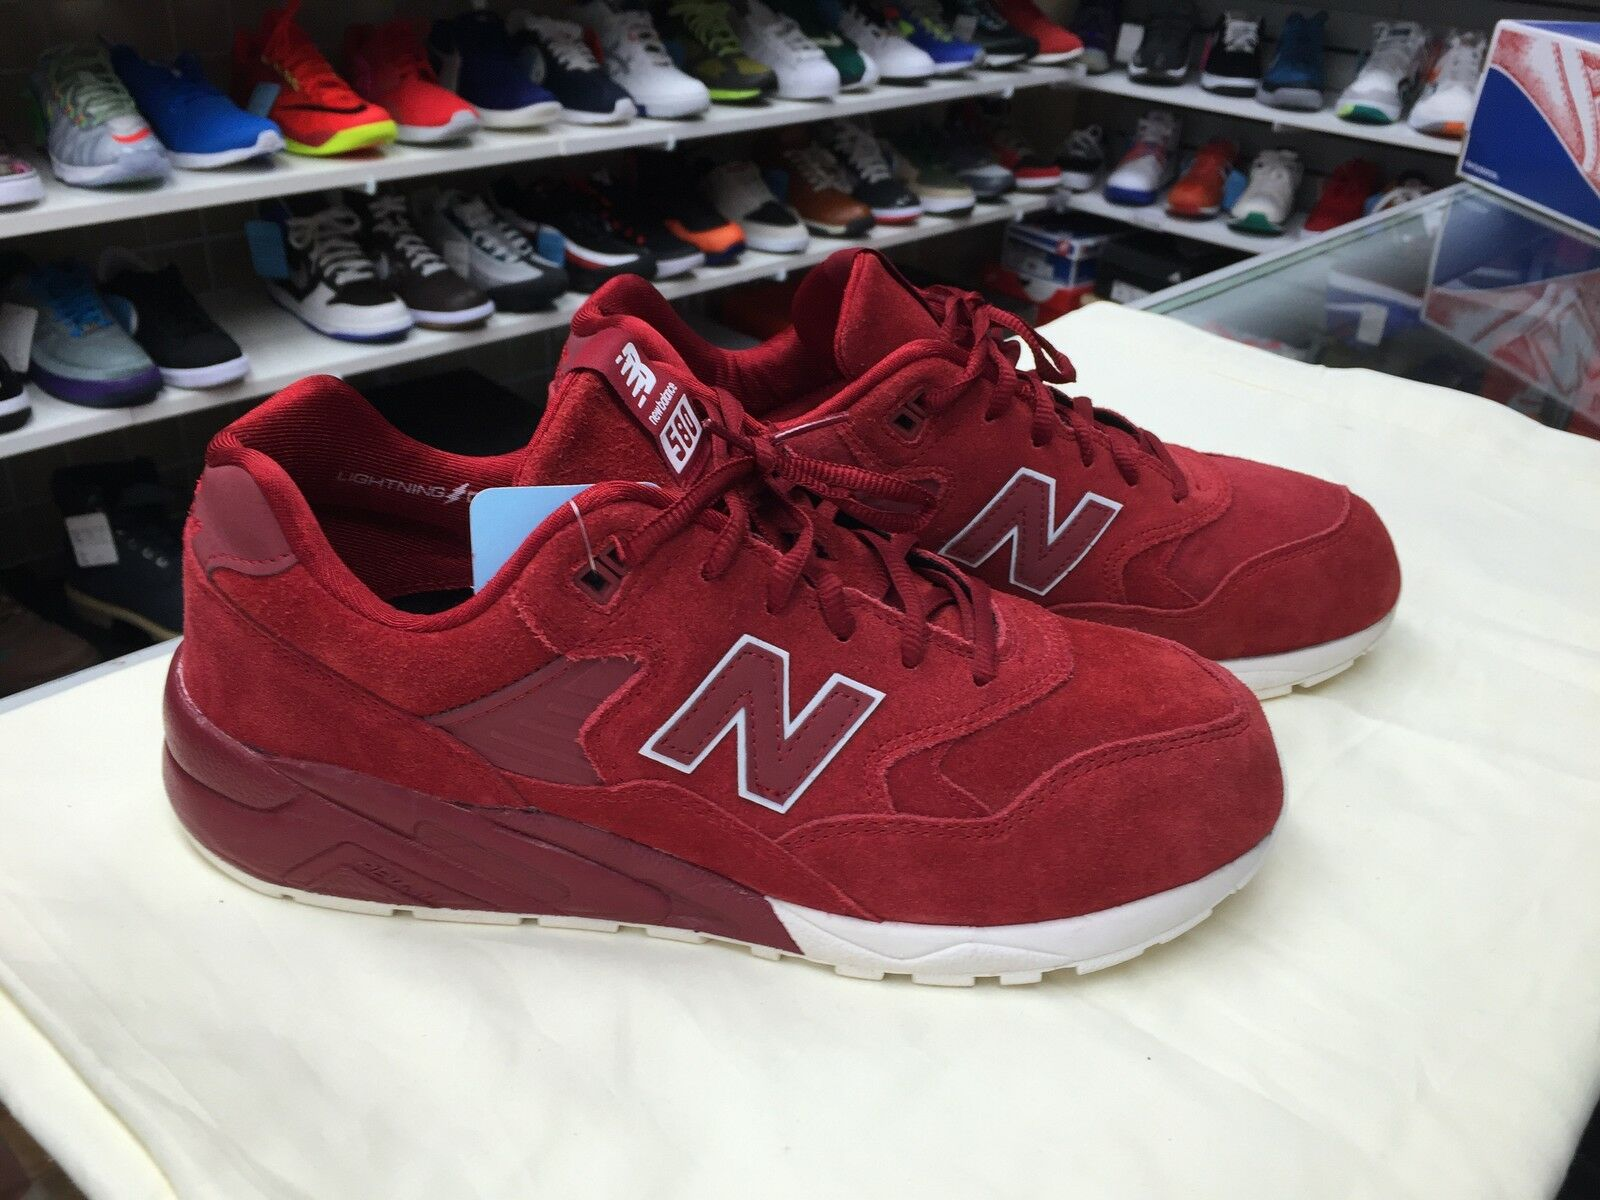 NEW BALANCE MRT580BR BRICK RED SIZE 9.5 MEN'S SNEAKERS AUTHENTIC 580